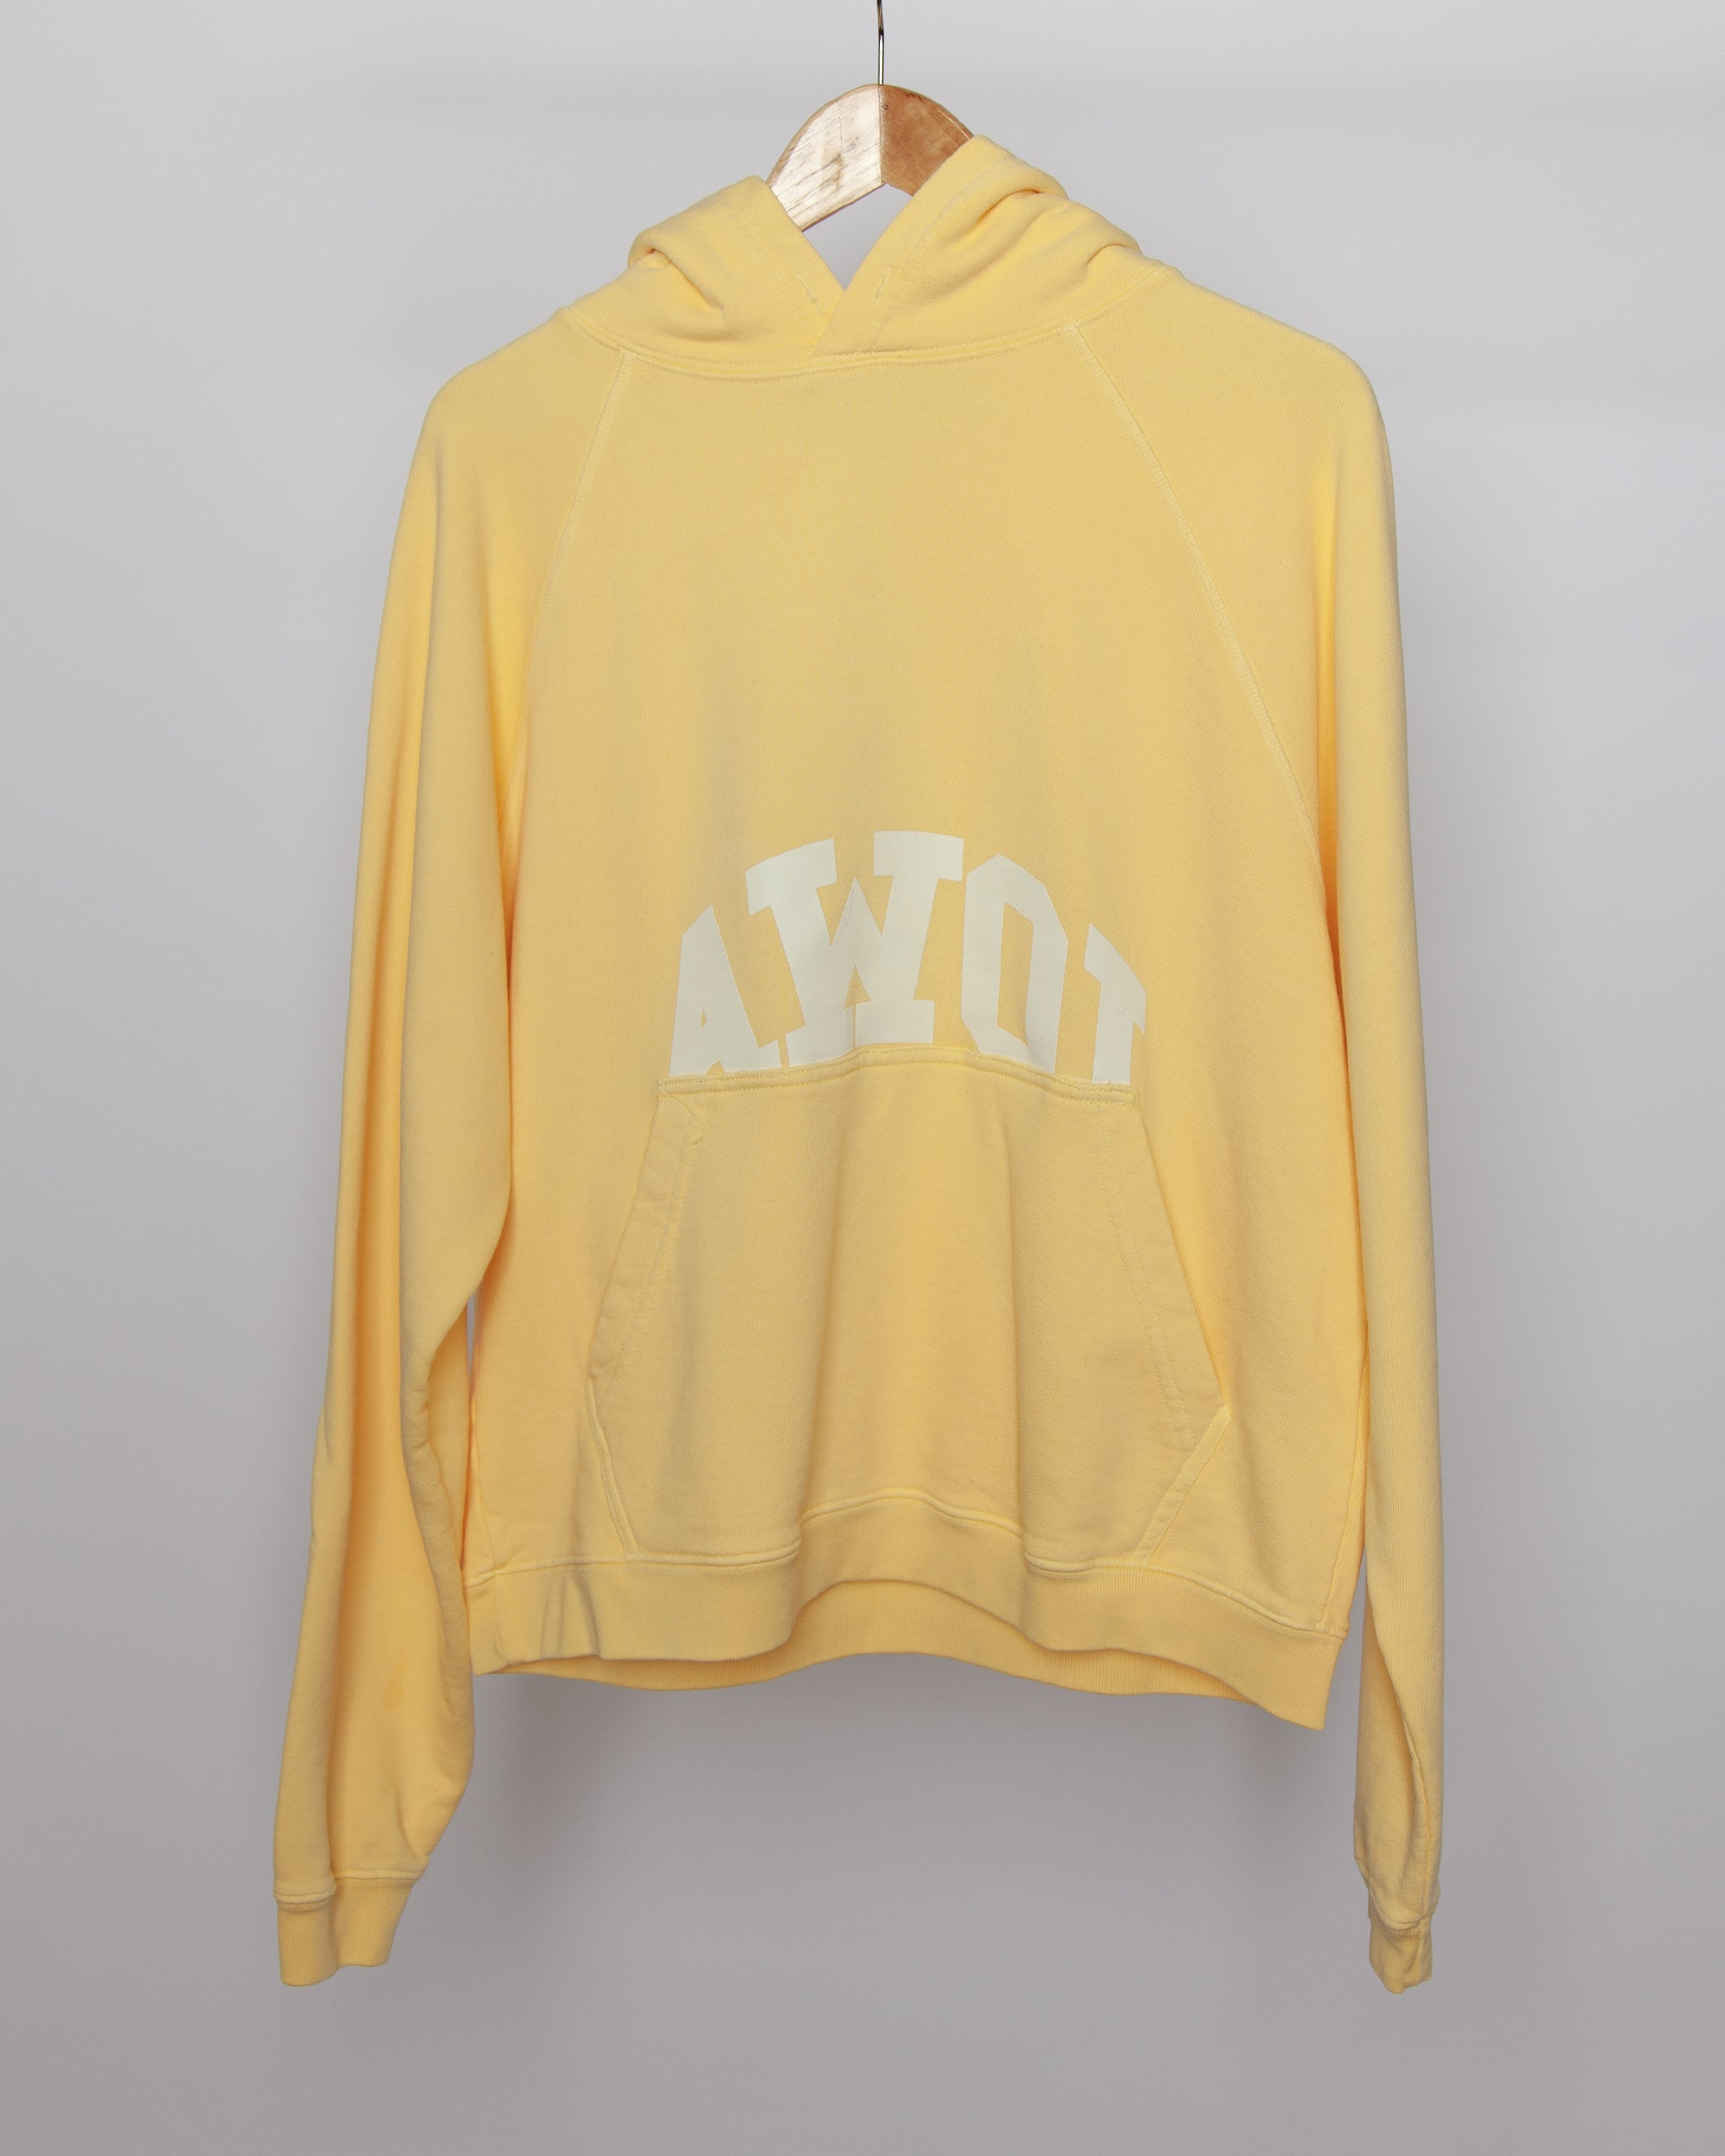 Fever Dream - AWOI Hoodie in Yellow